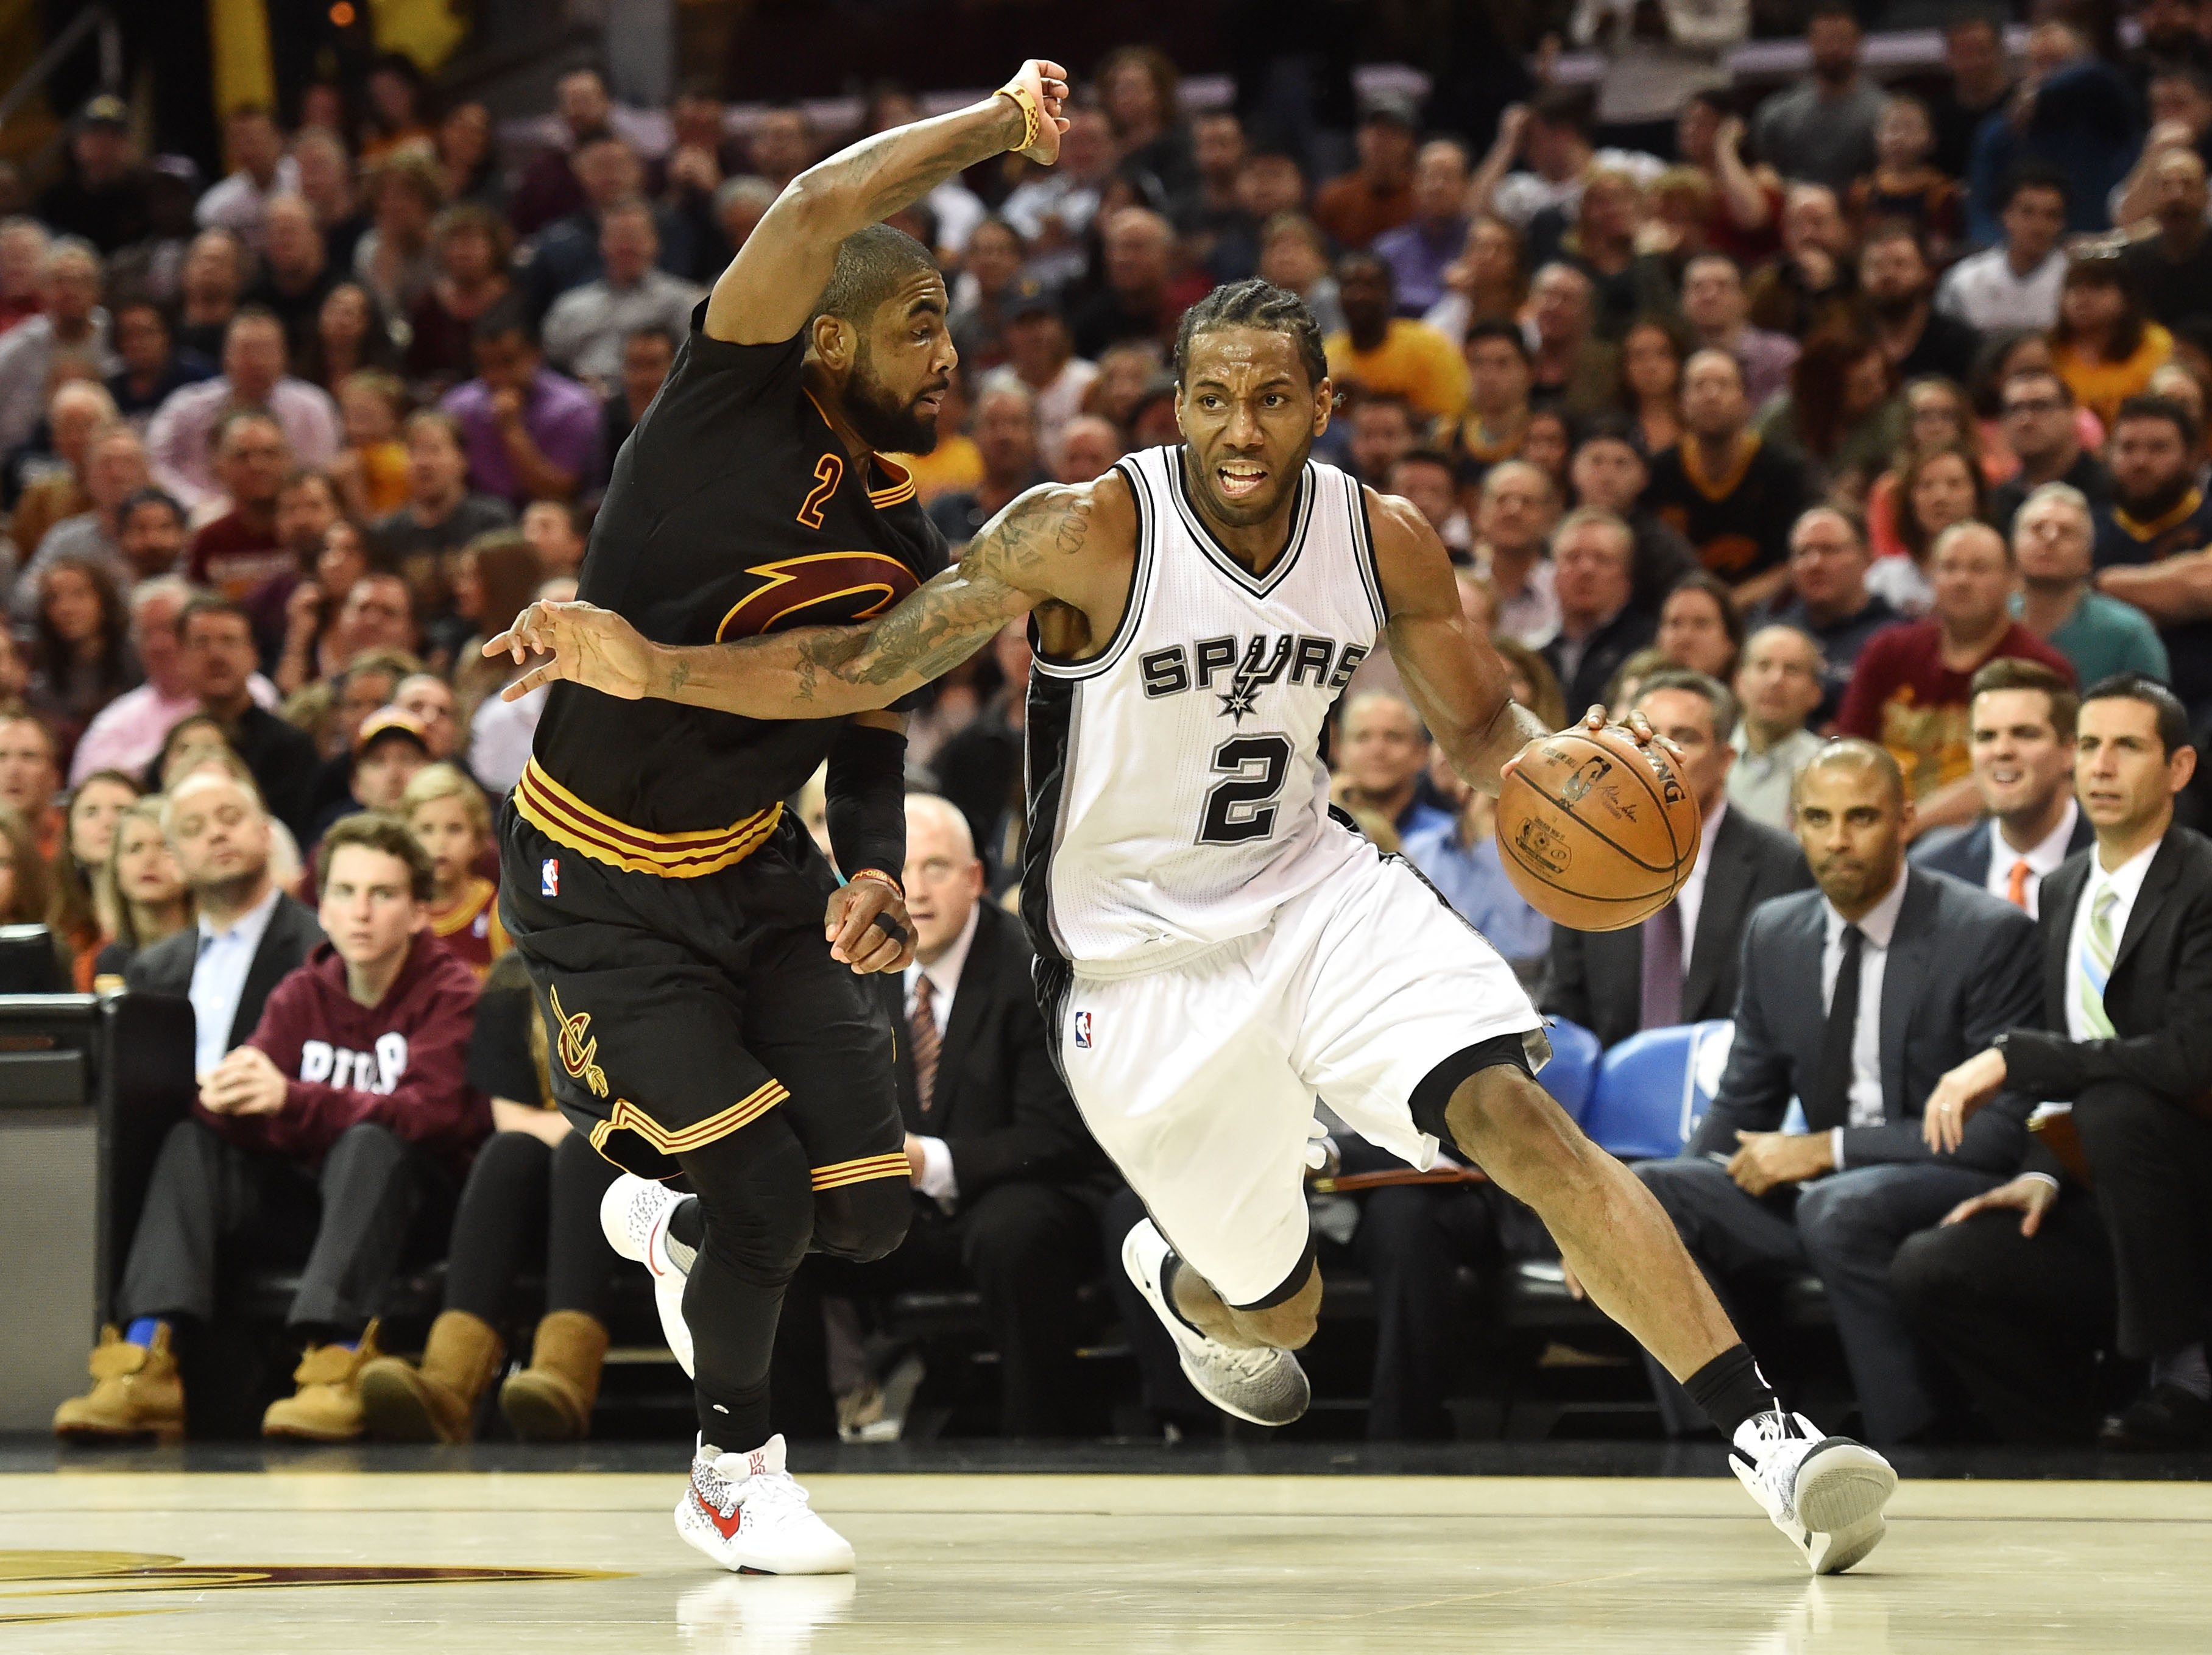 9830019-nba-san-antonio-spurs-at-cleveland-cavaliers-1